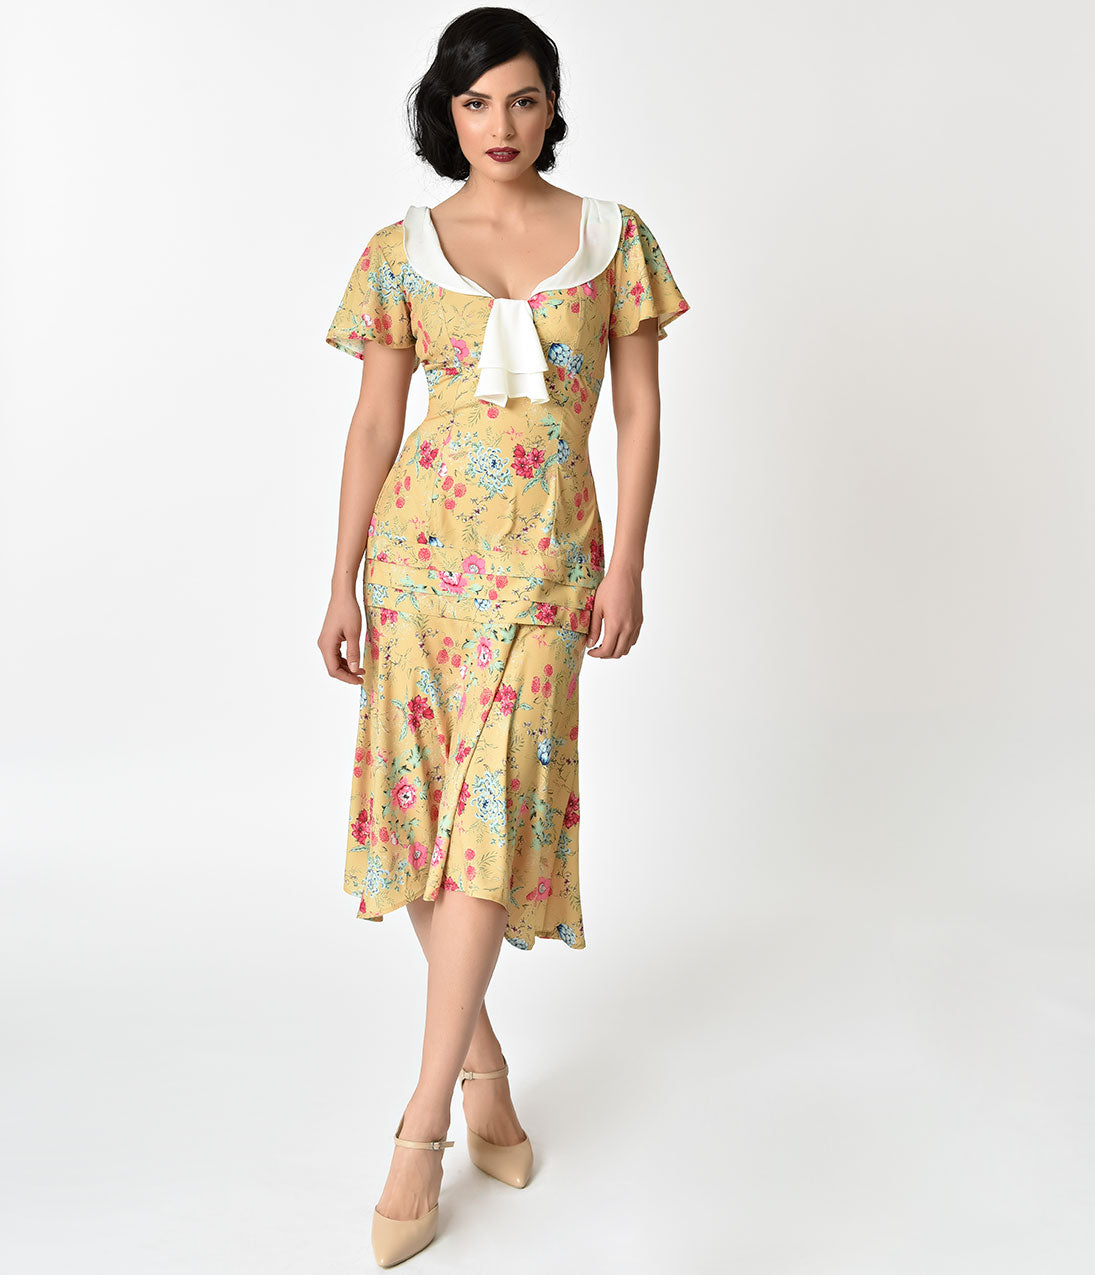 1920s Style Dresses, Flapper Dresses 1920S Style Yellow Wildflower Print Wilshire Flapper Day Dress $98.00 AT vintagedancer.com